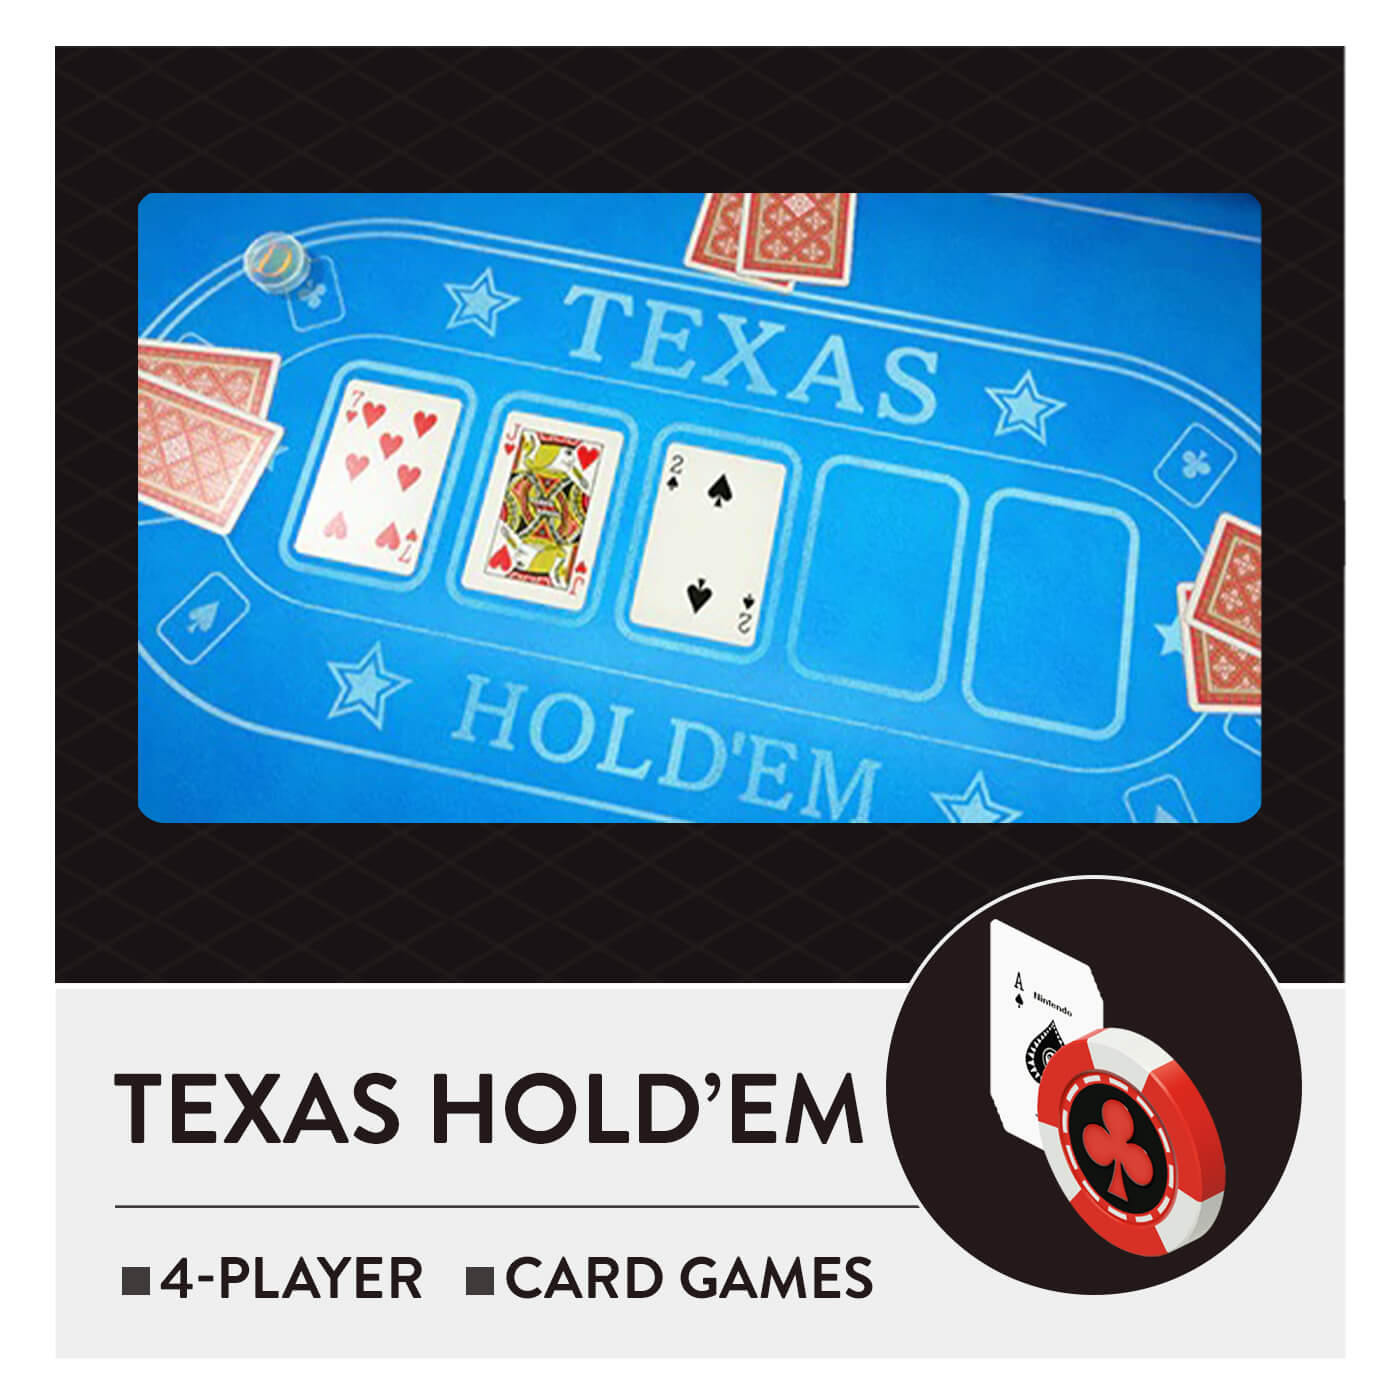 51 Worldwide Games - Texas Hold'em